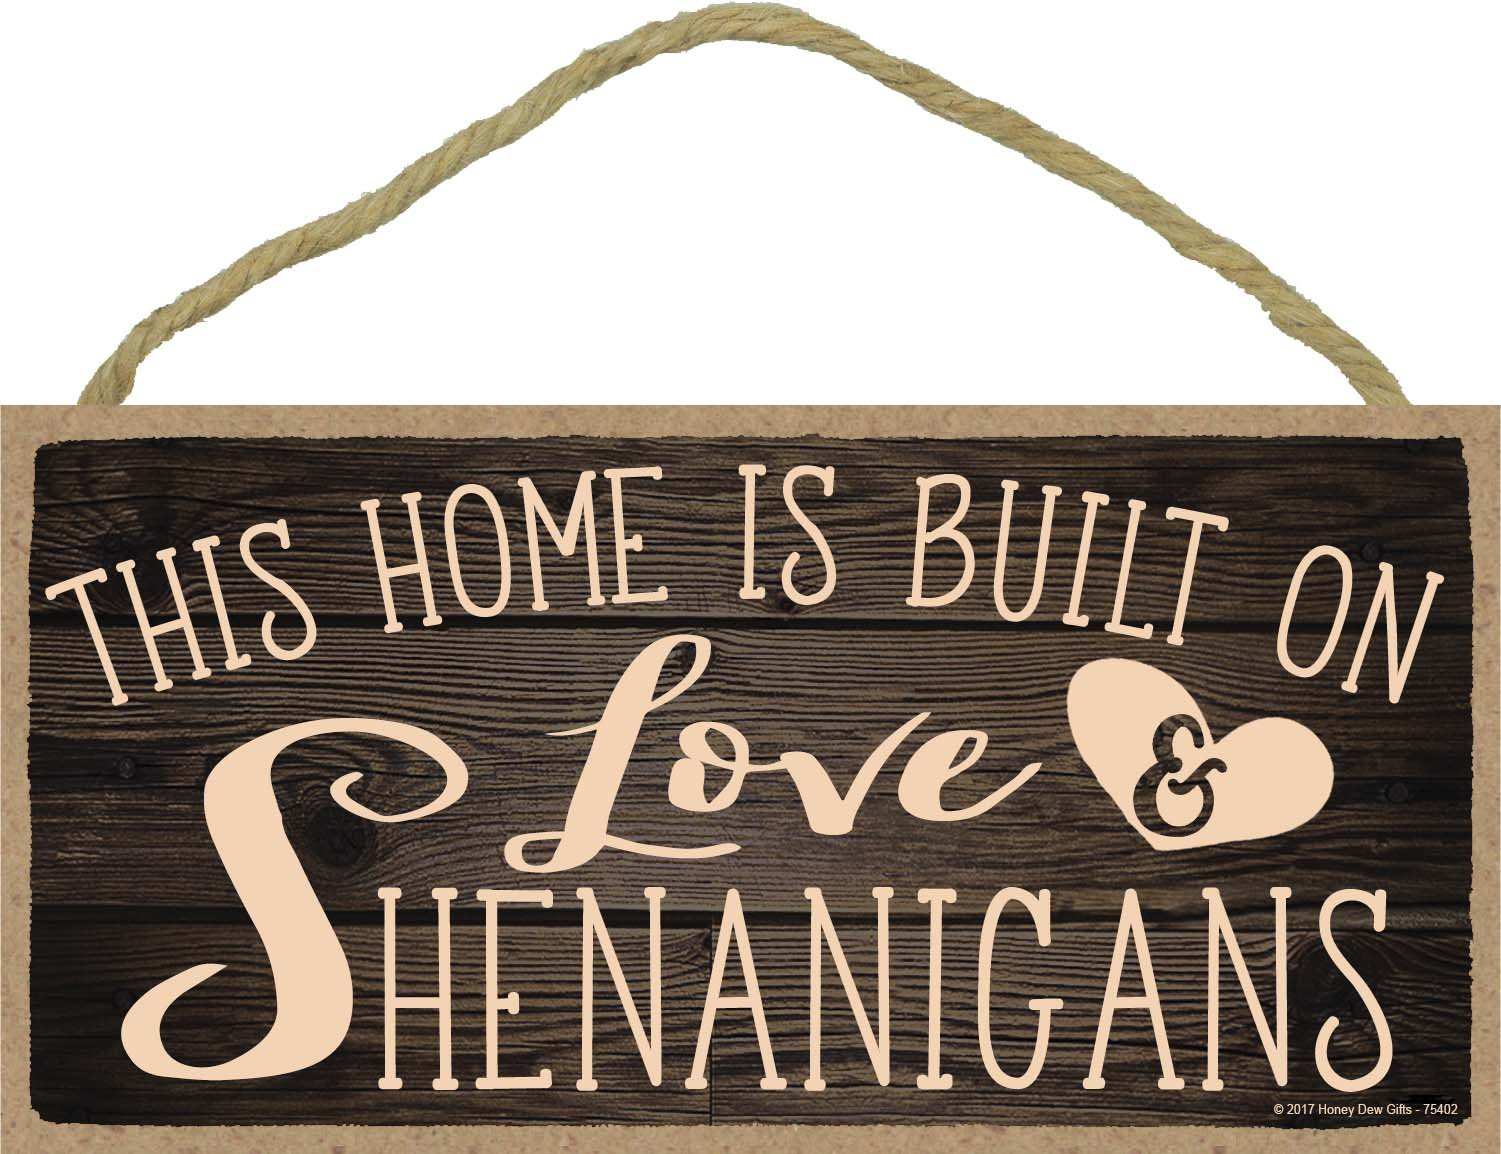 Honey Dew Gifts Wall Hanging Decorative Wood Sign - This Home is Built on Love and Shenanigans 5x10 Hang on The Wall Home Decor by Honey Dew Gifts